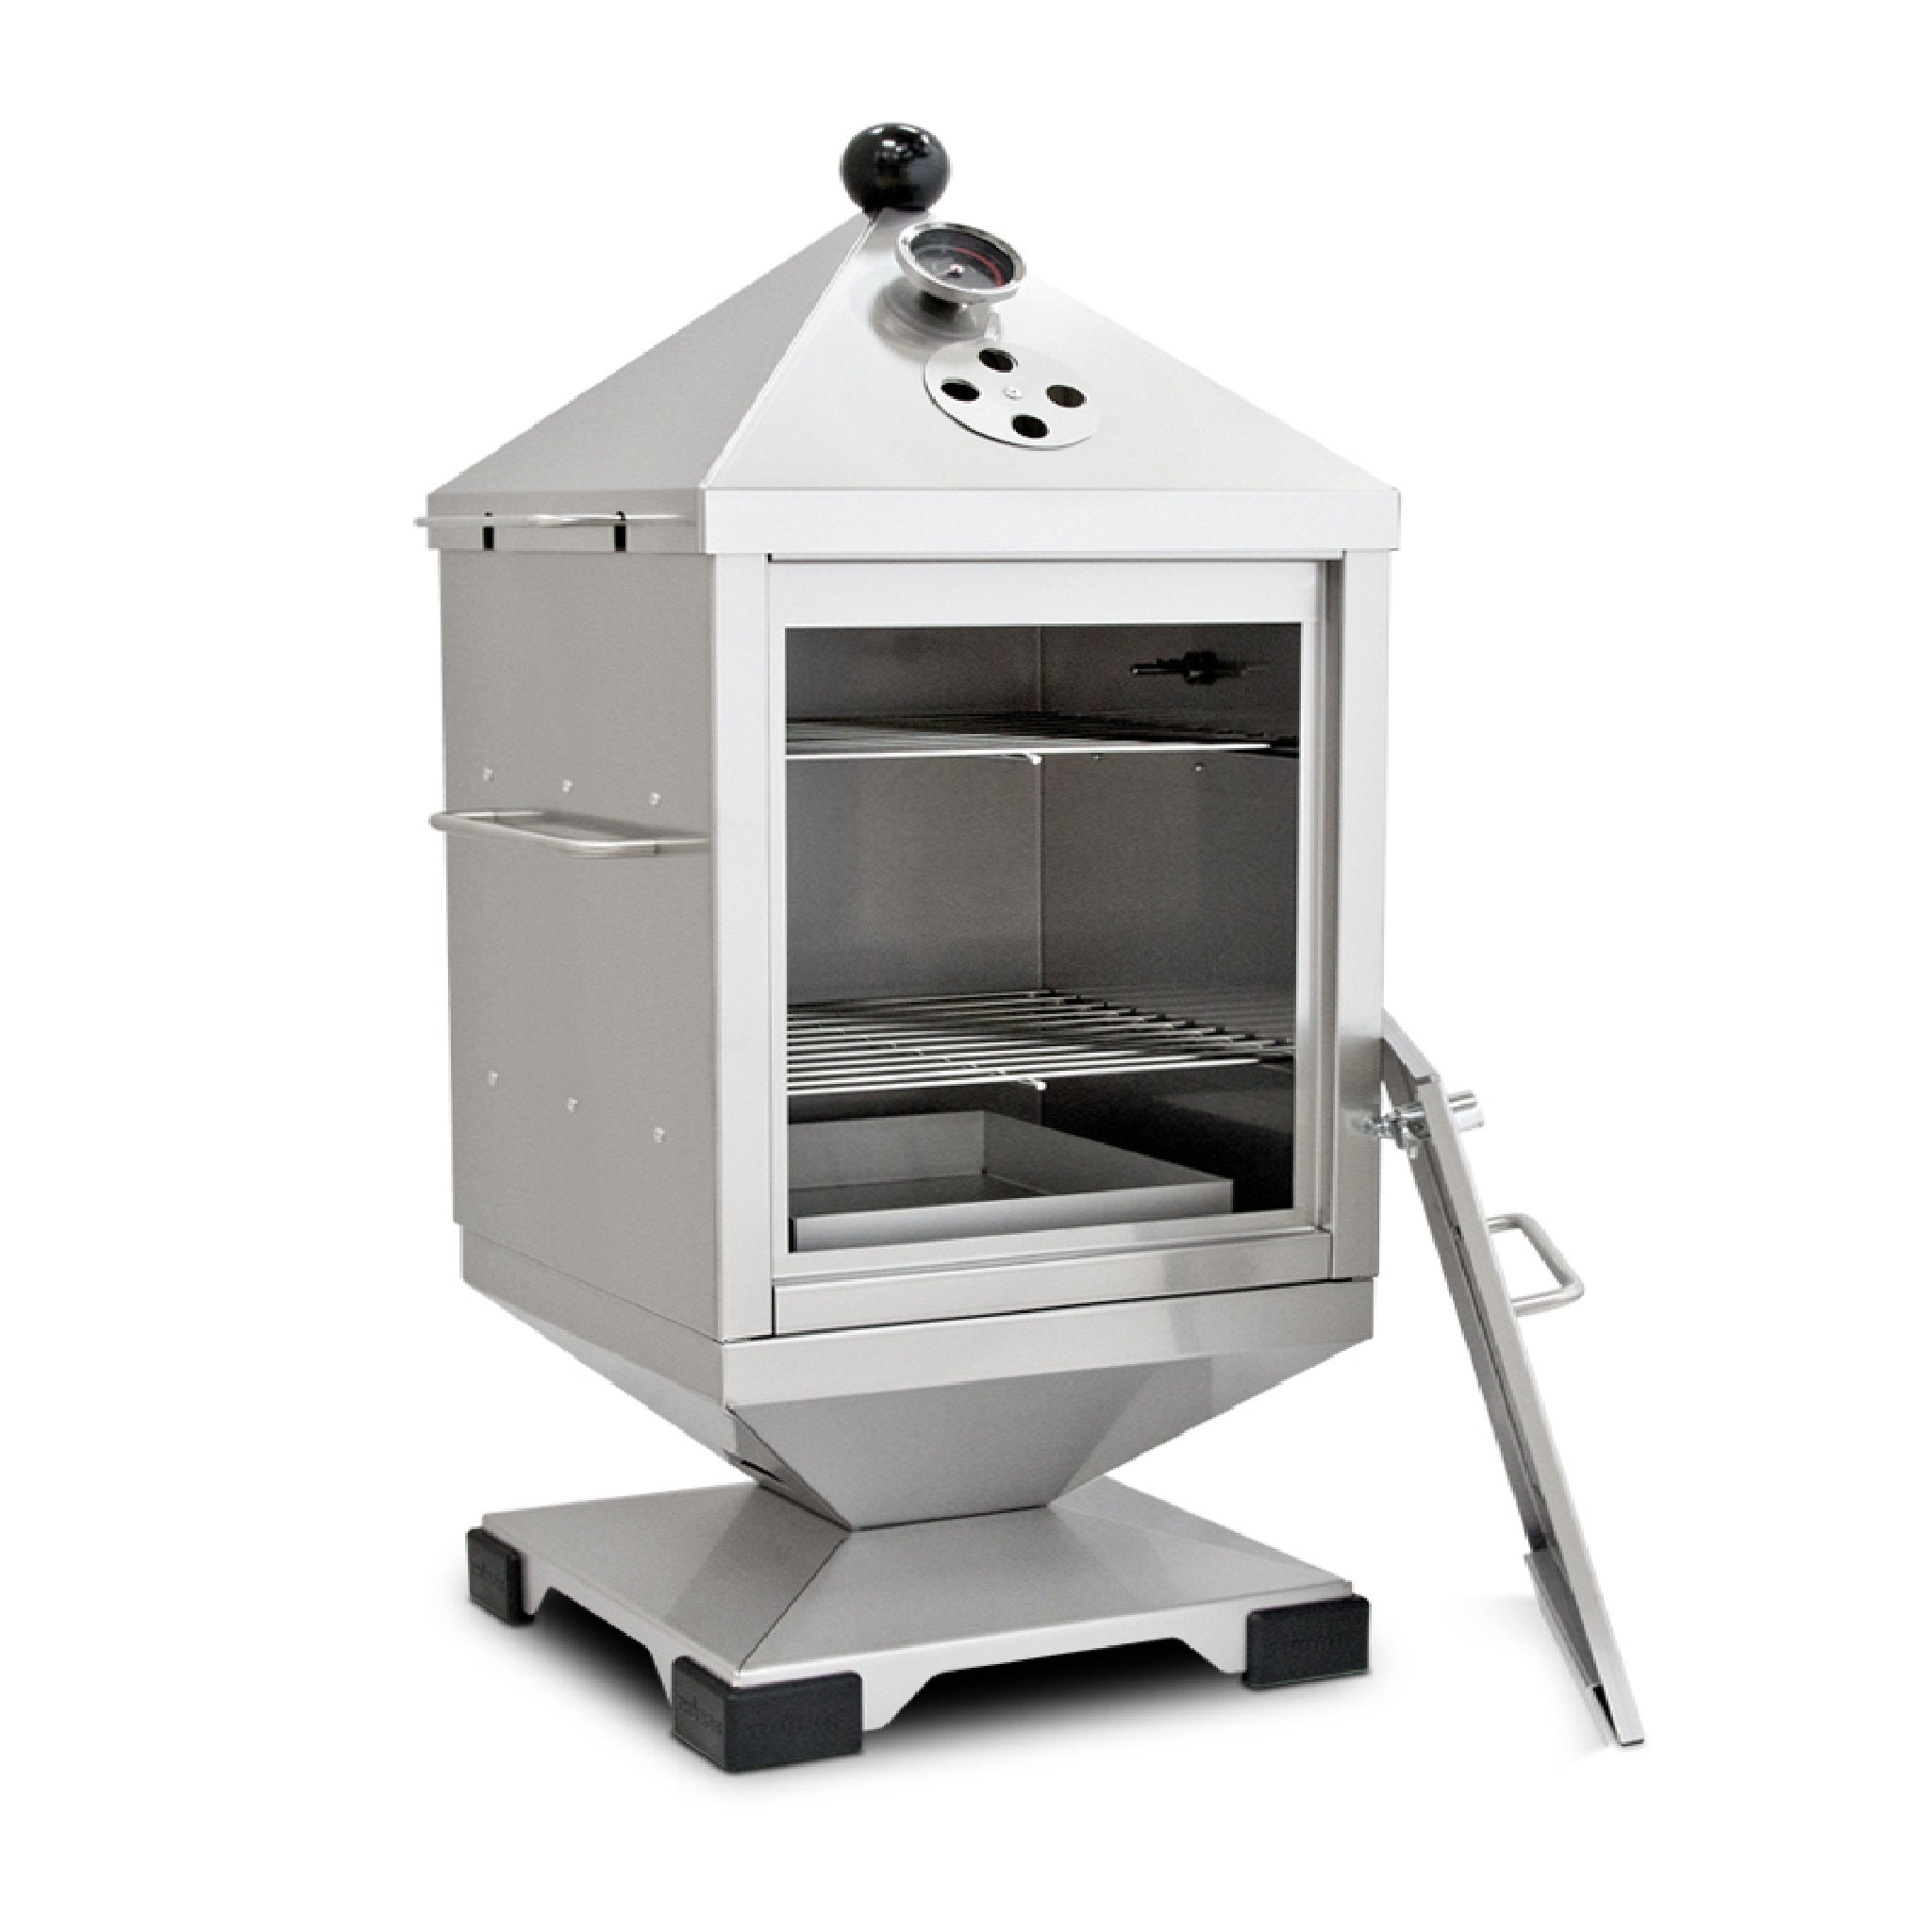 Thuros T1 BBQ Tower Smoker & Grill